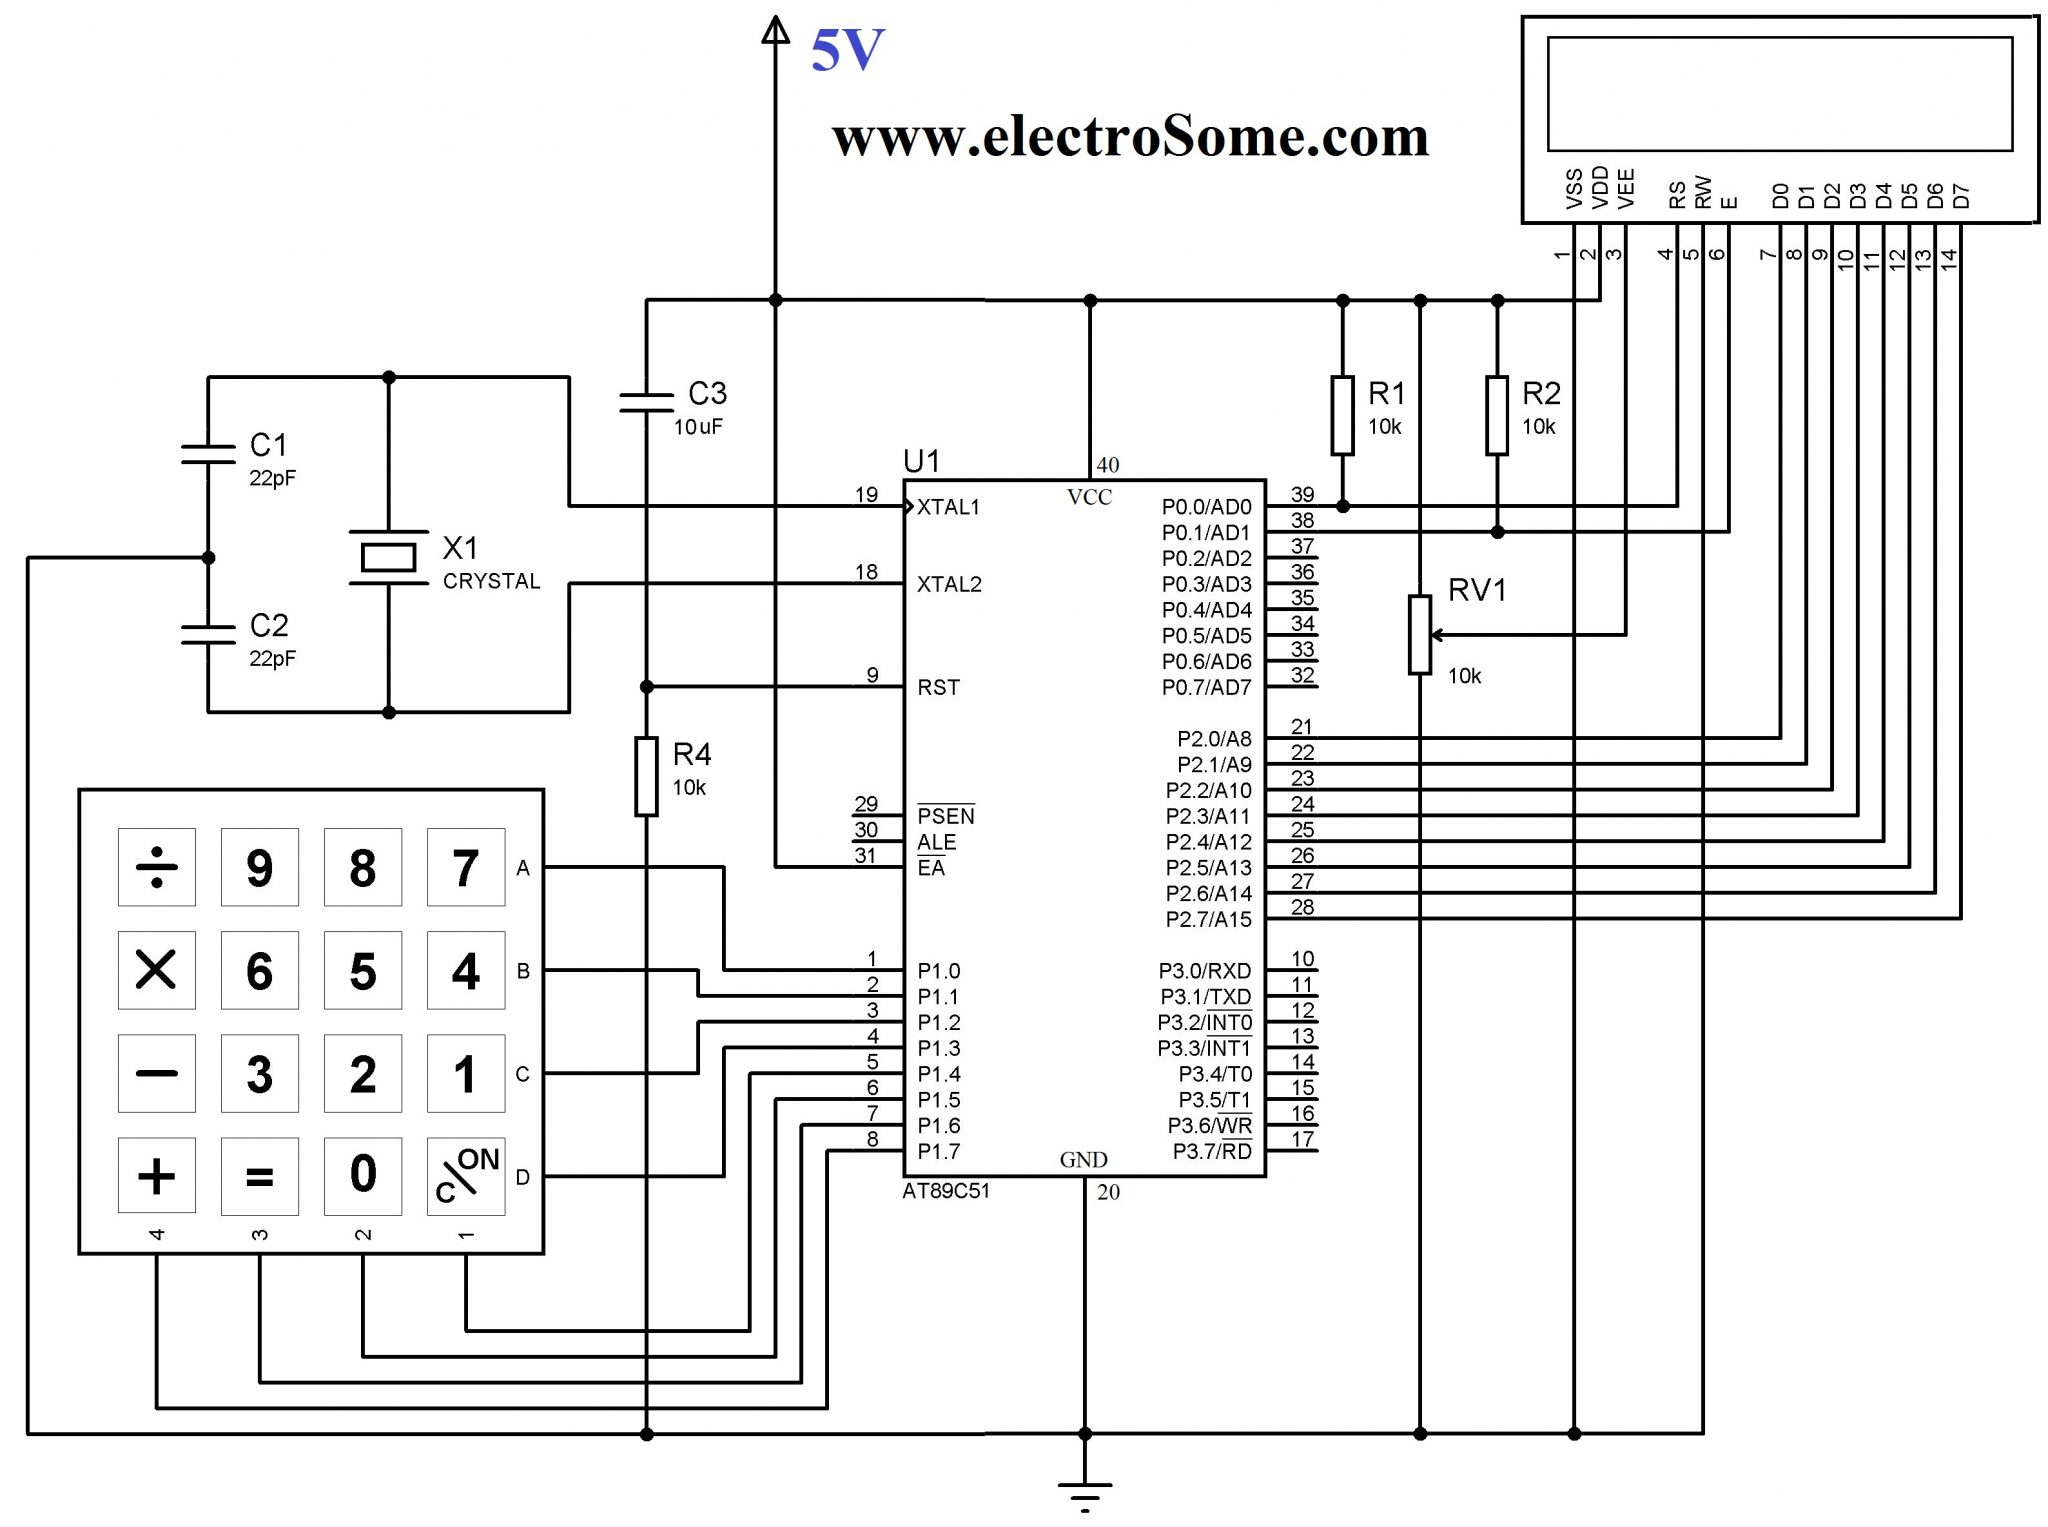 Circuit diagram. Interfacing Keypad with 8051 Microcontroller using Keil C